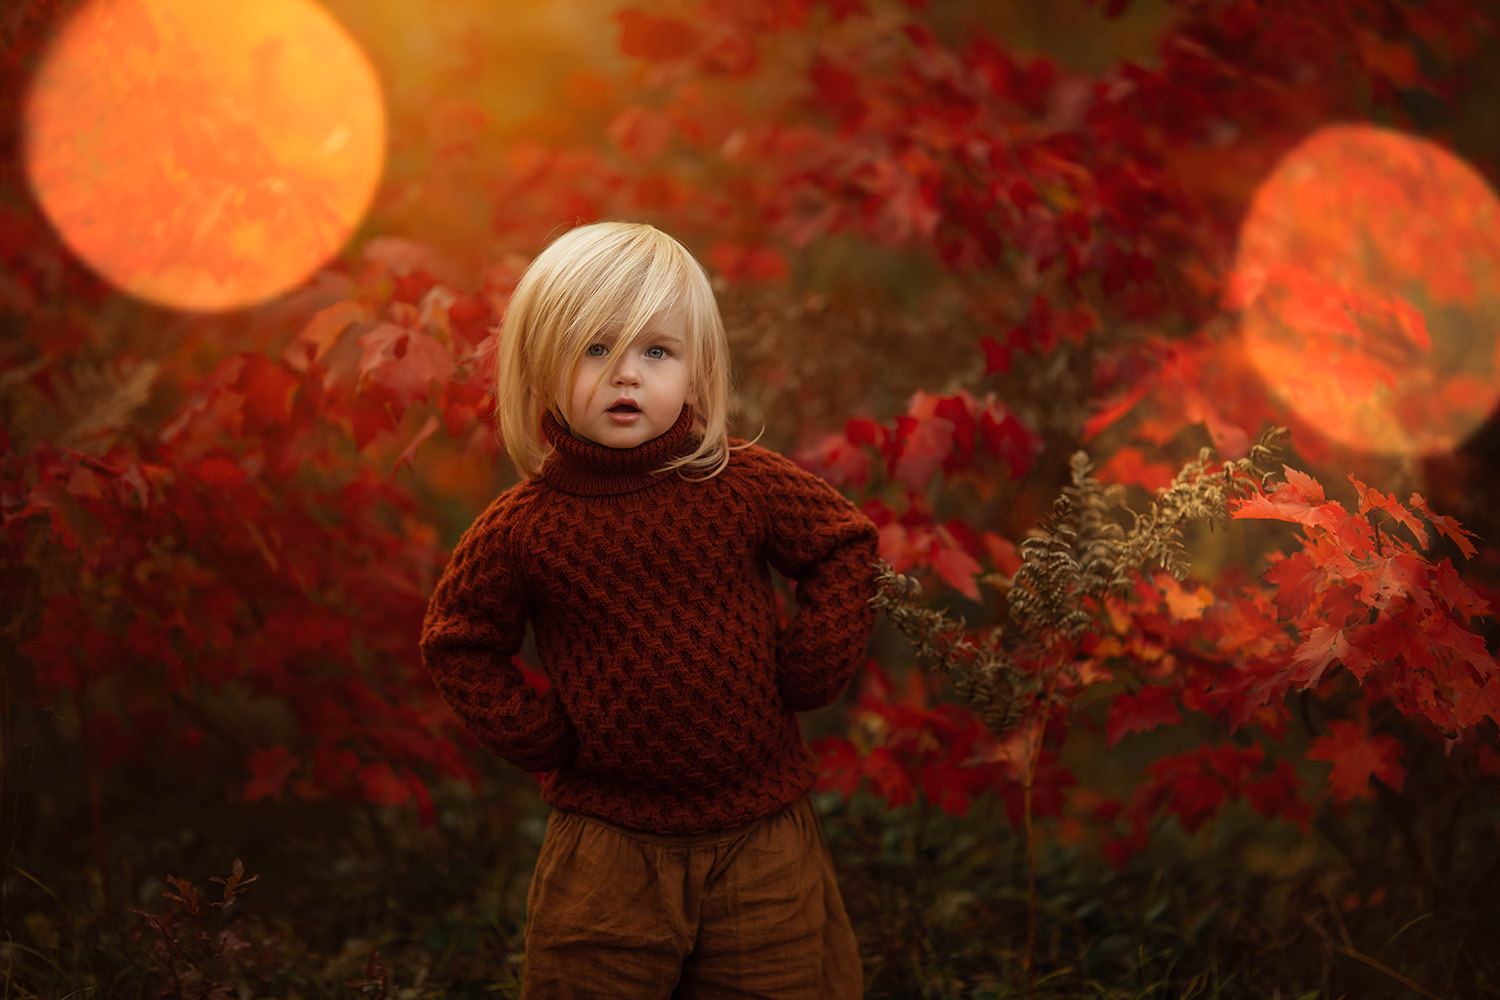 A small child is standing in a meadow with red leaves or flowers behind her.